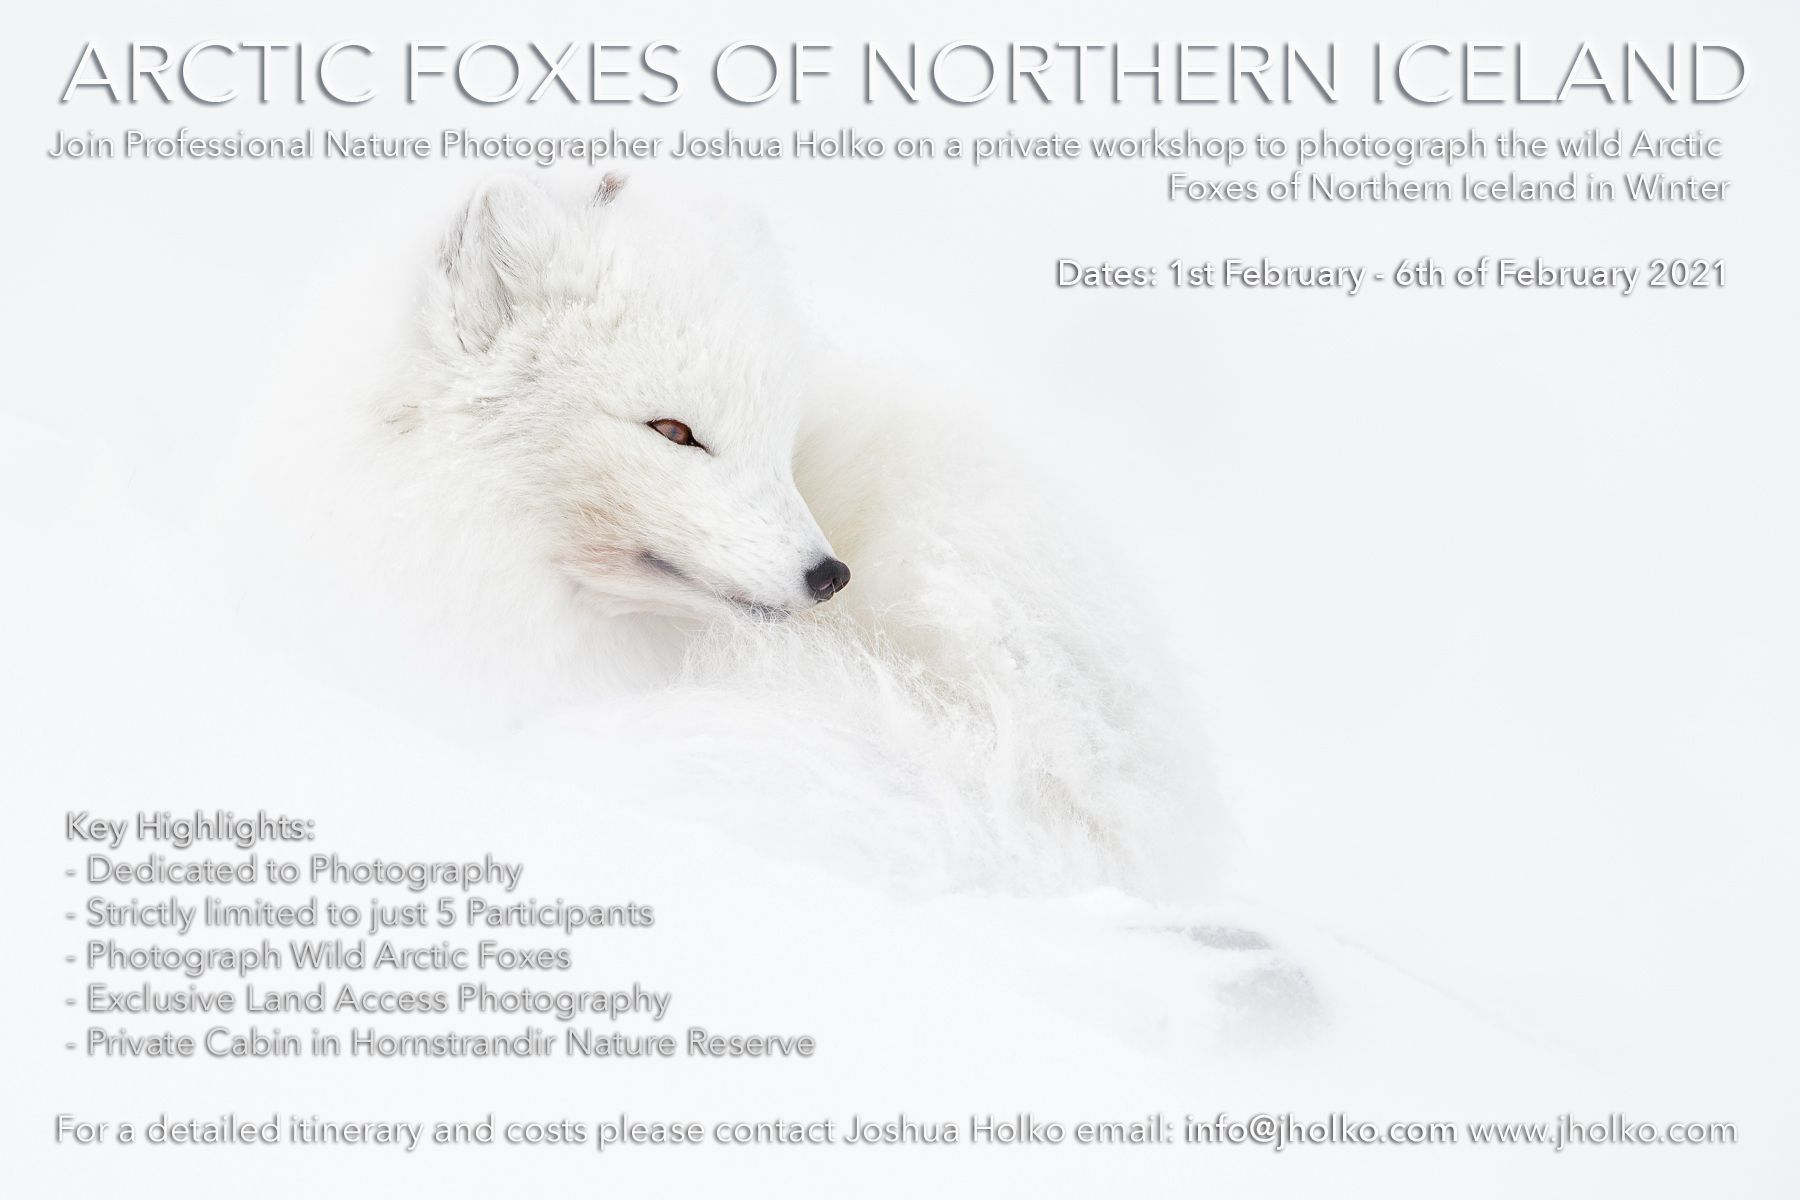 Arctic Fox Photography Expedition with Joshua Holko